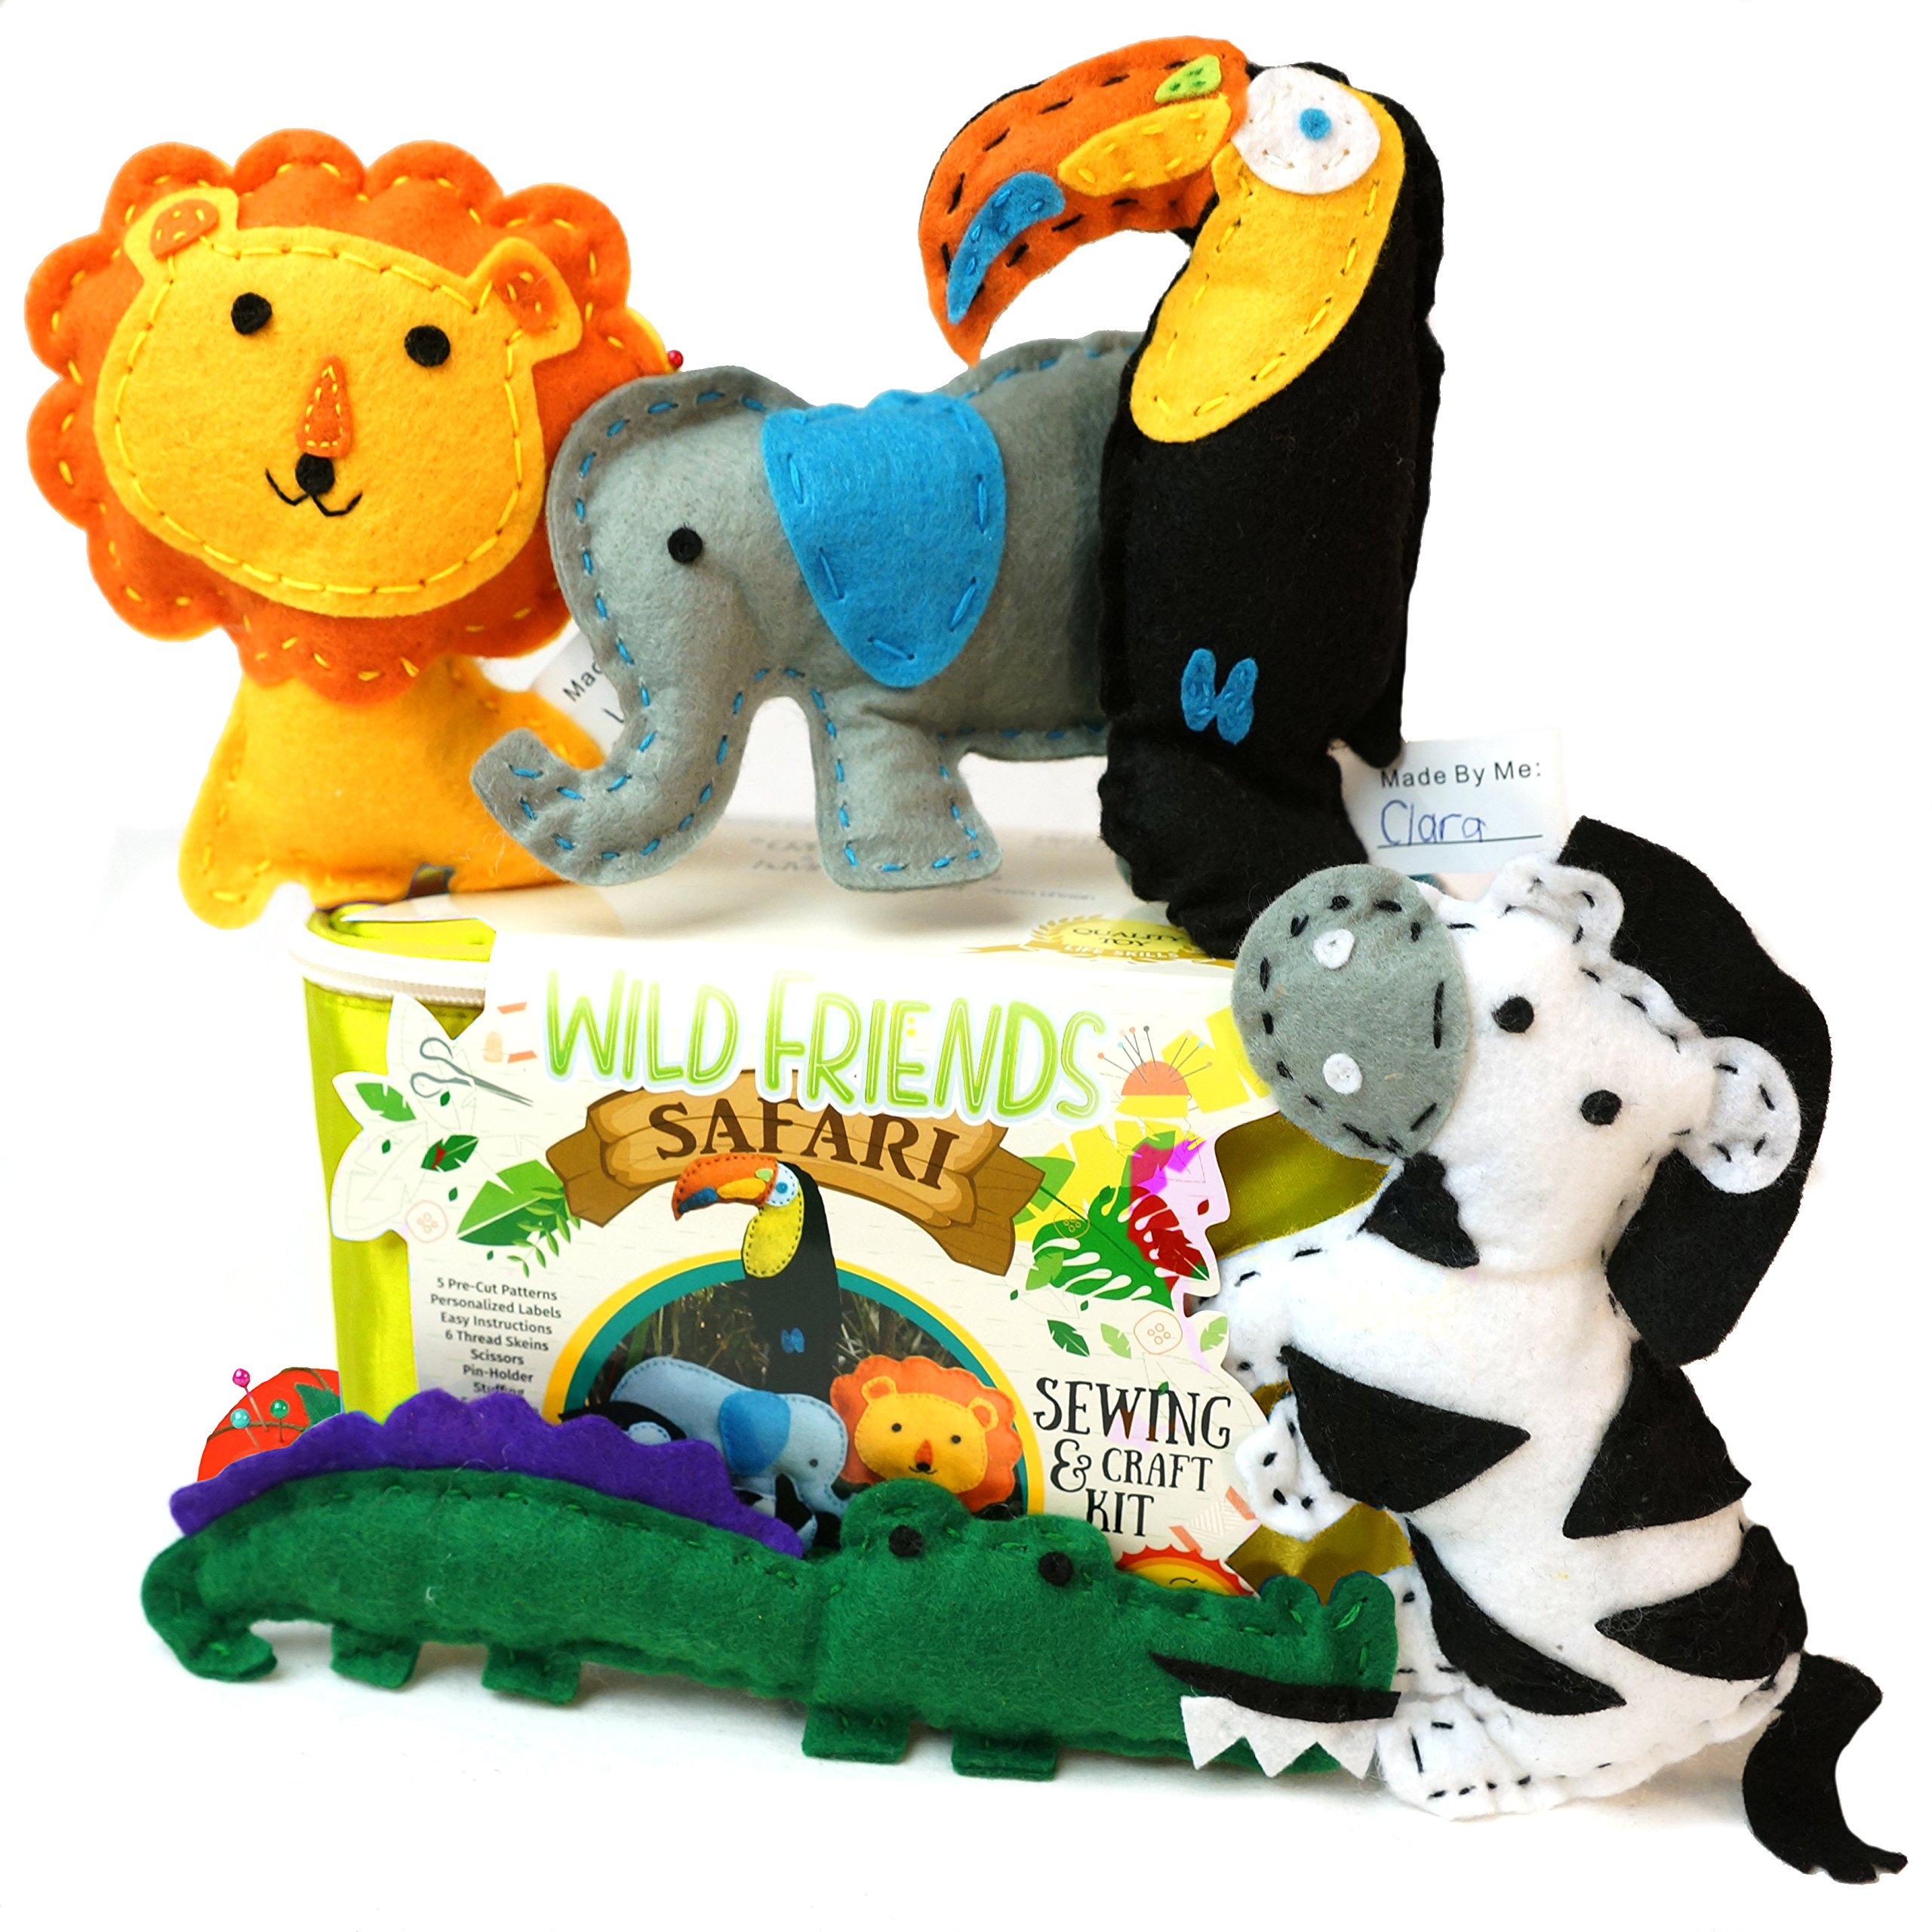 Kids Sewing Kit and Animal Crafts - Fun DIY Kid Craft and Sew Kits for Girls and Boys 120 Piece Set by Four Seasons Crafting